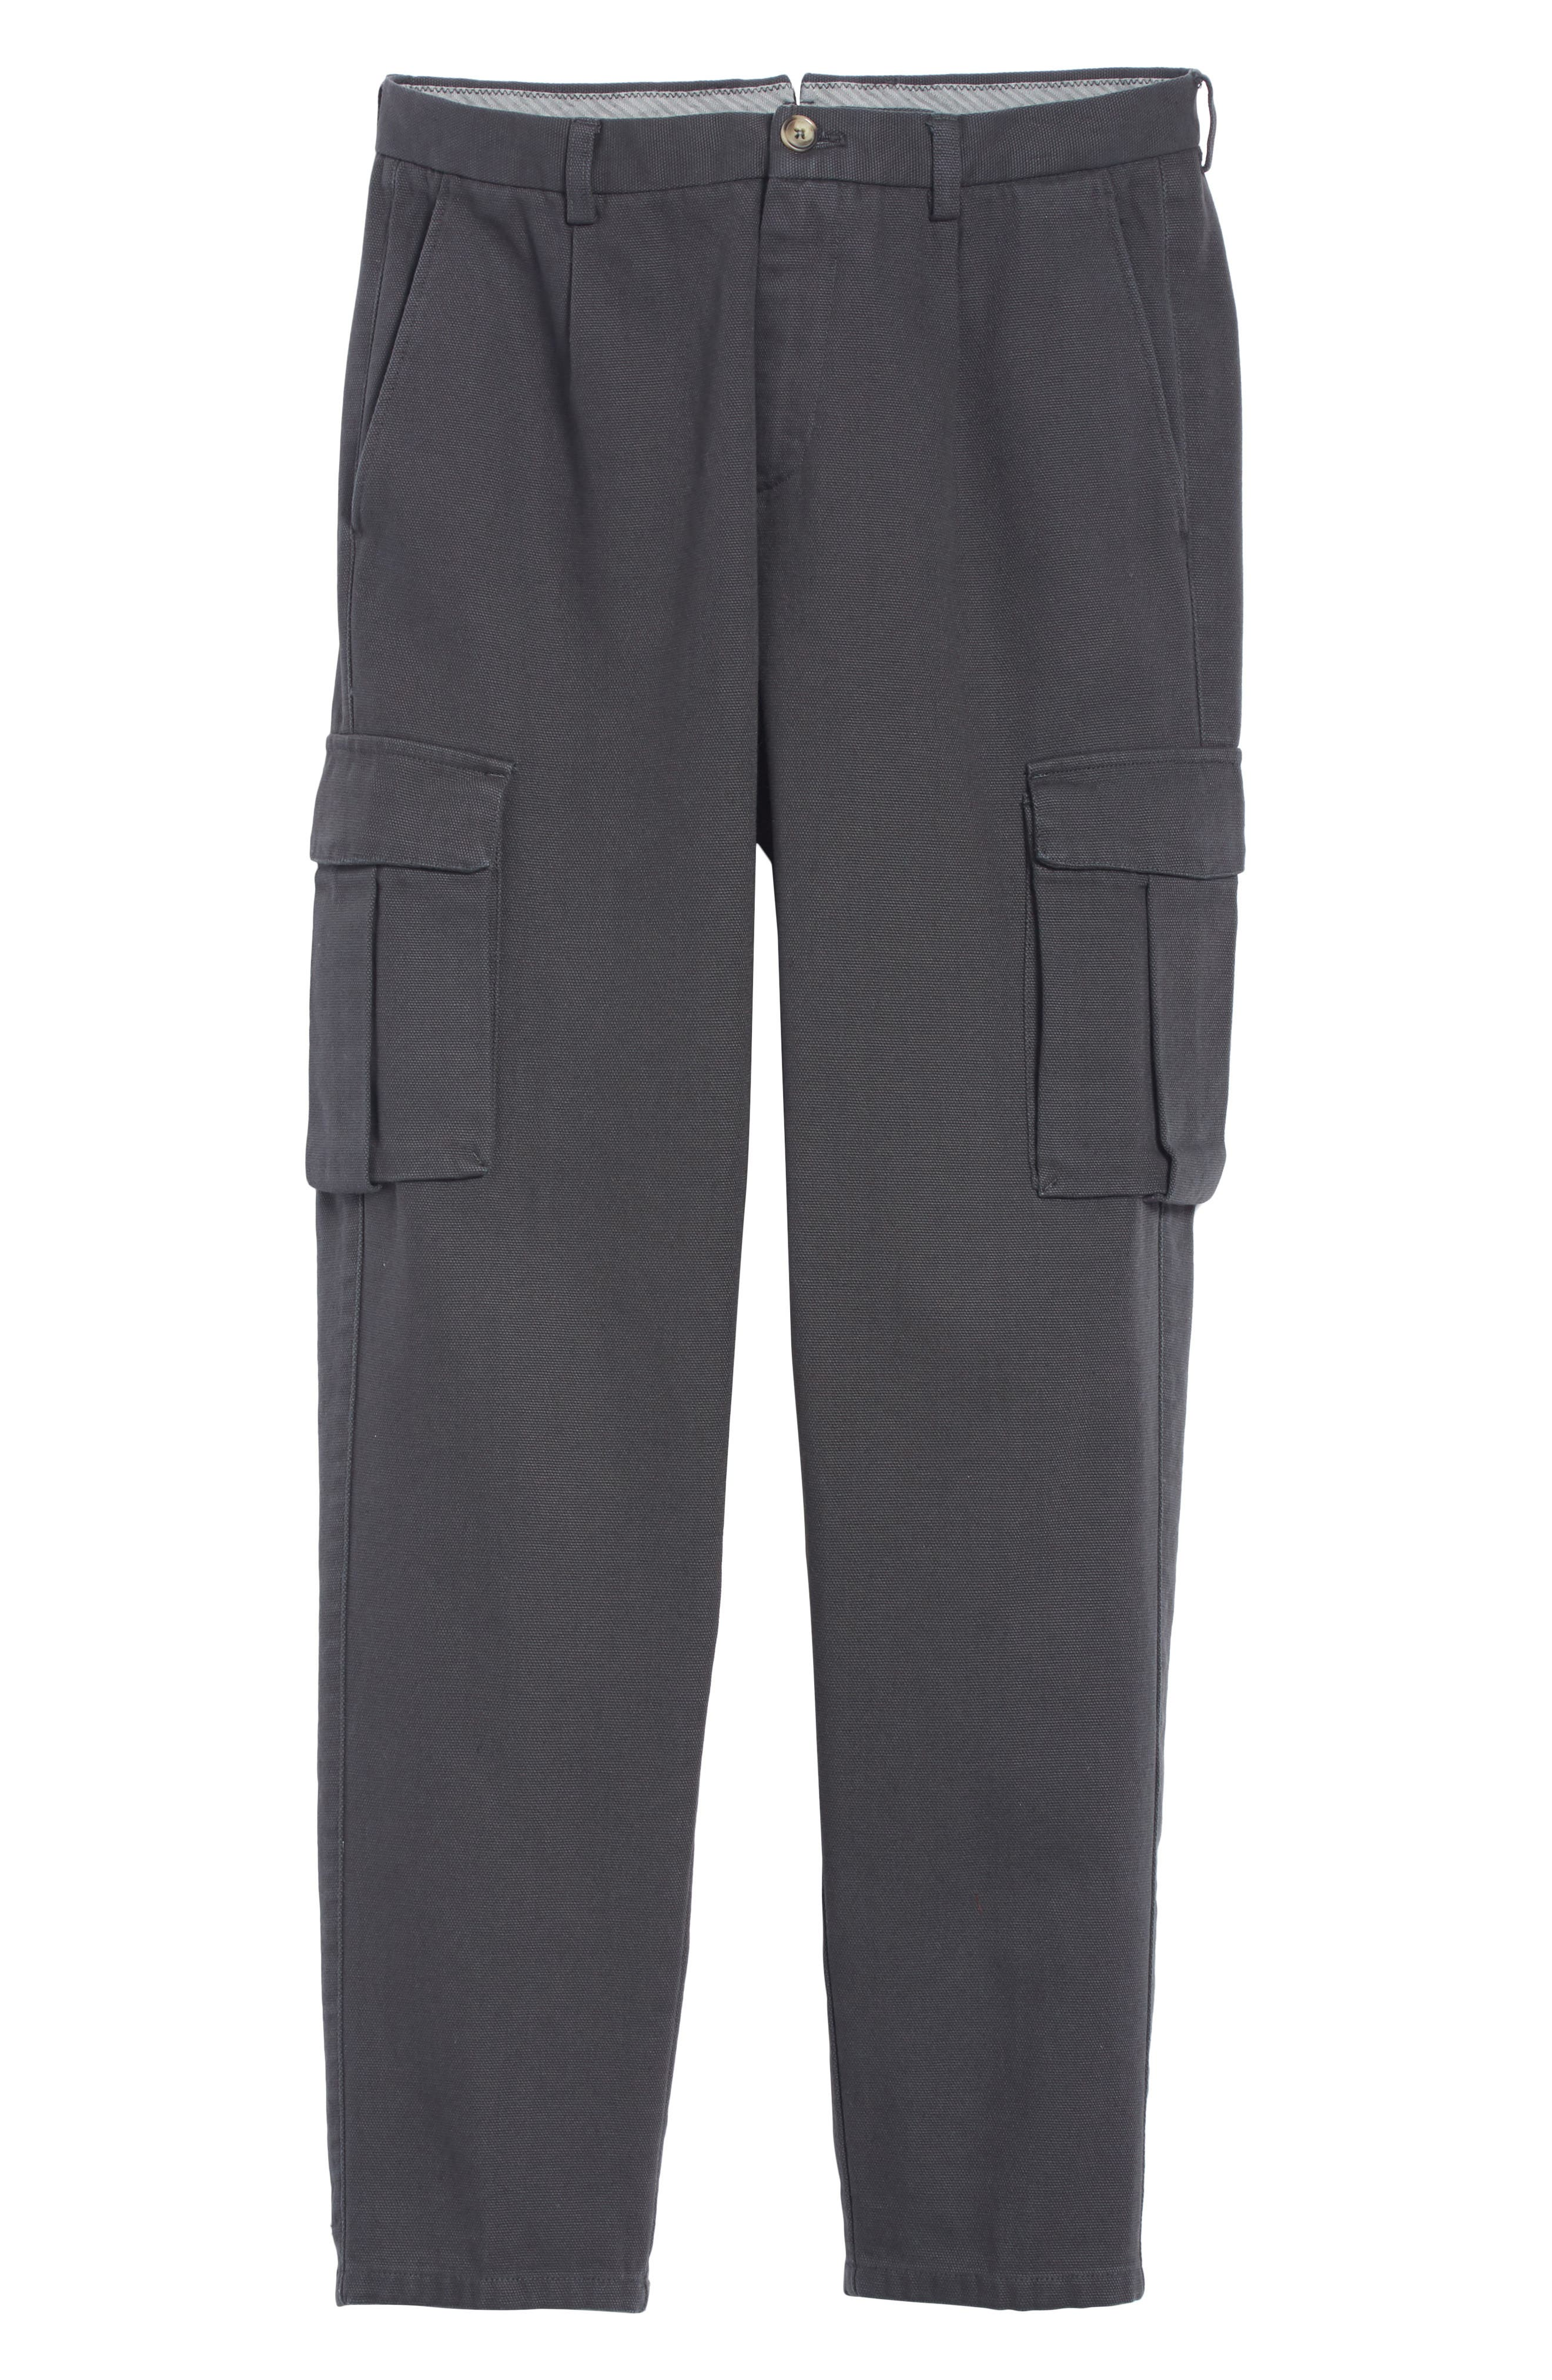 Stretch Canvas Cargo Pants,                             Alternate thumbnail 6, color,                             CHARCOAL